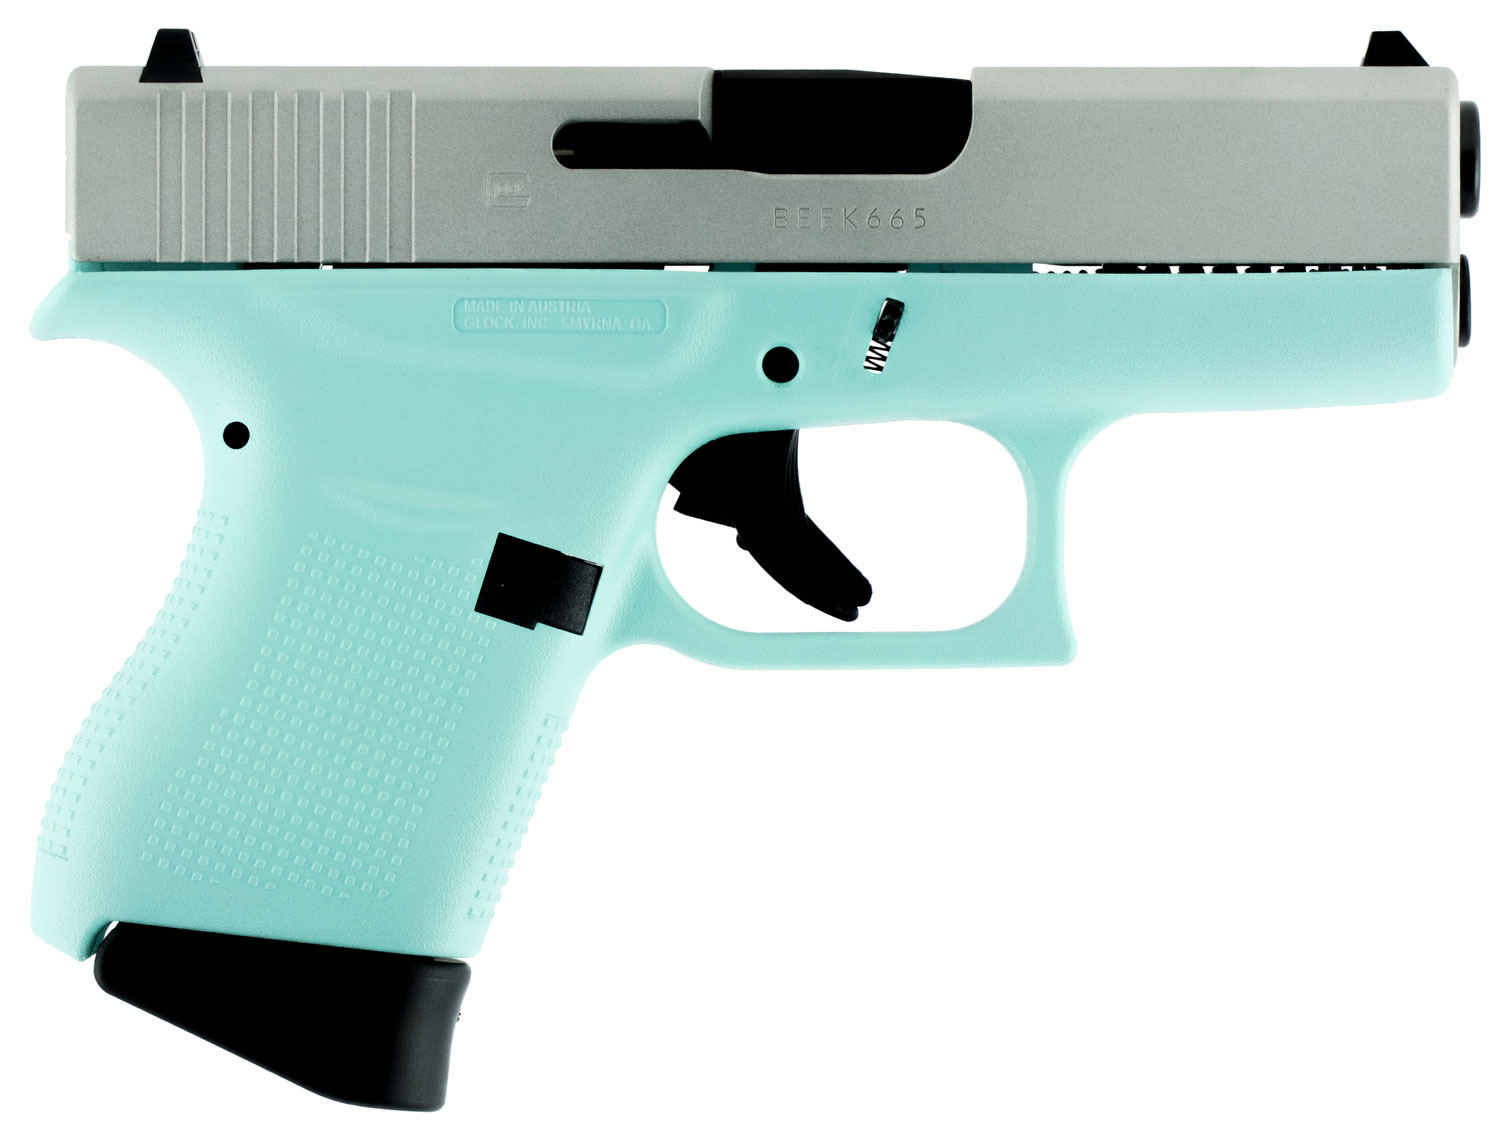 Glock PI4350201RES G43 Subcompact Double 9mm Luger 3.39